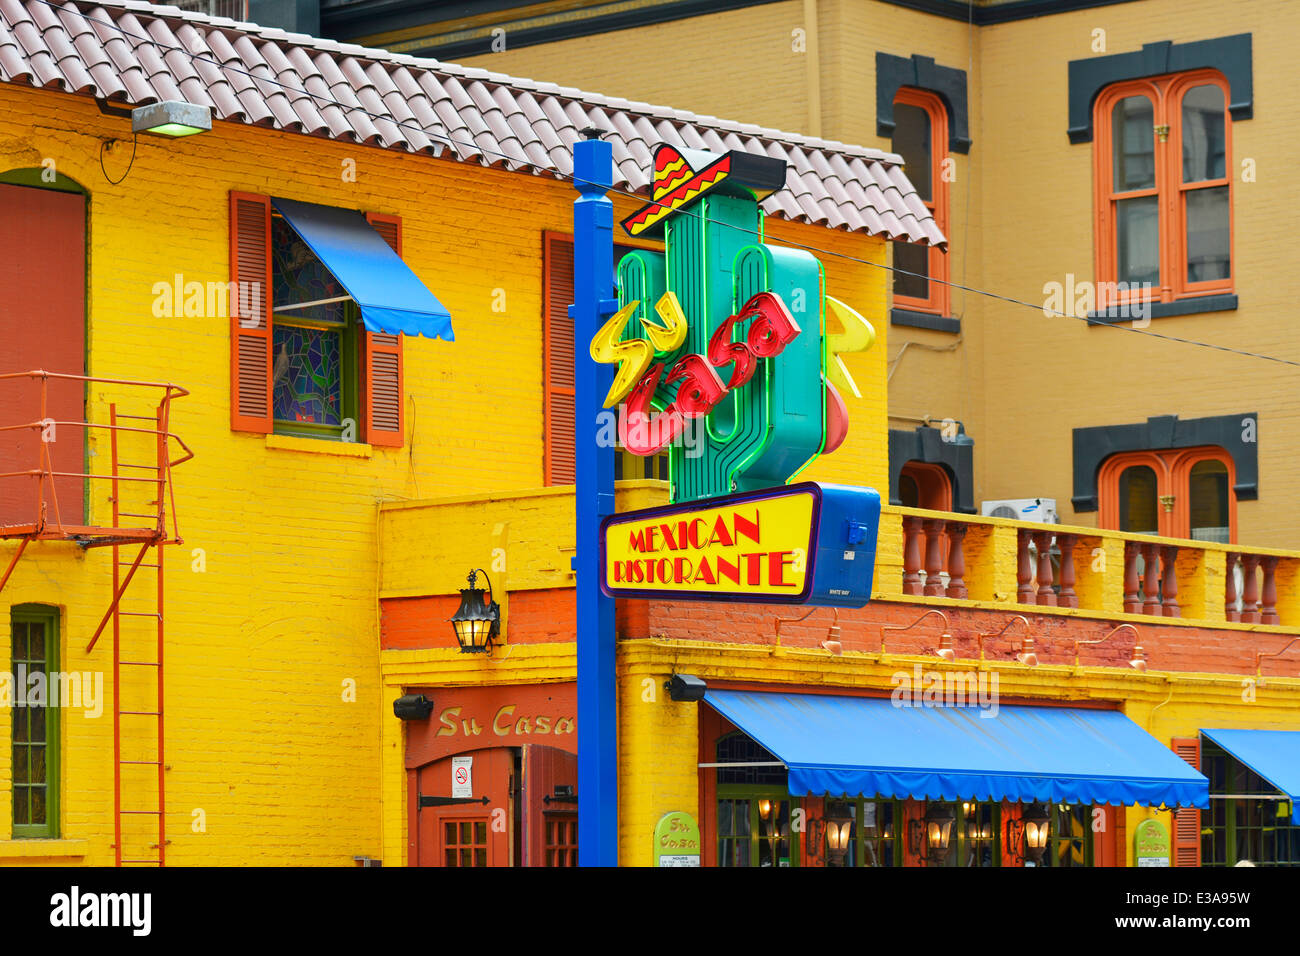 Su casa mexican ristorante on ontario street chicago - Ristorante in casa ...